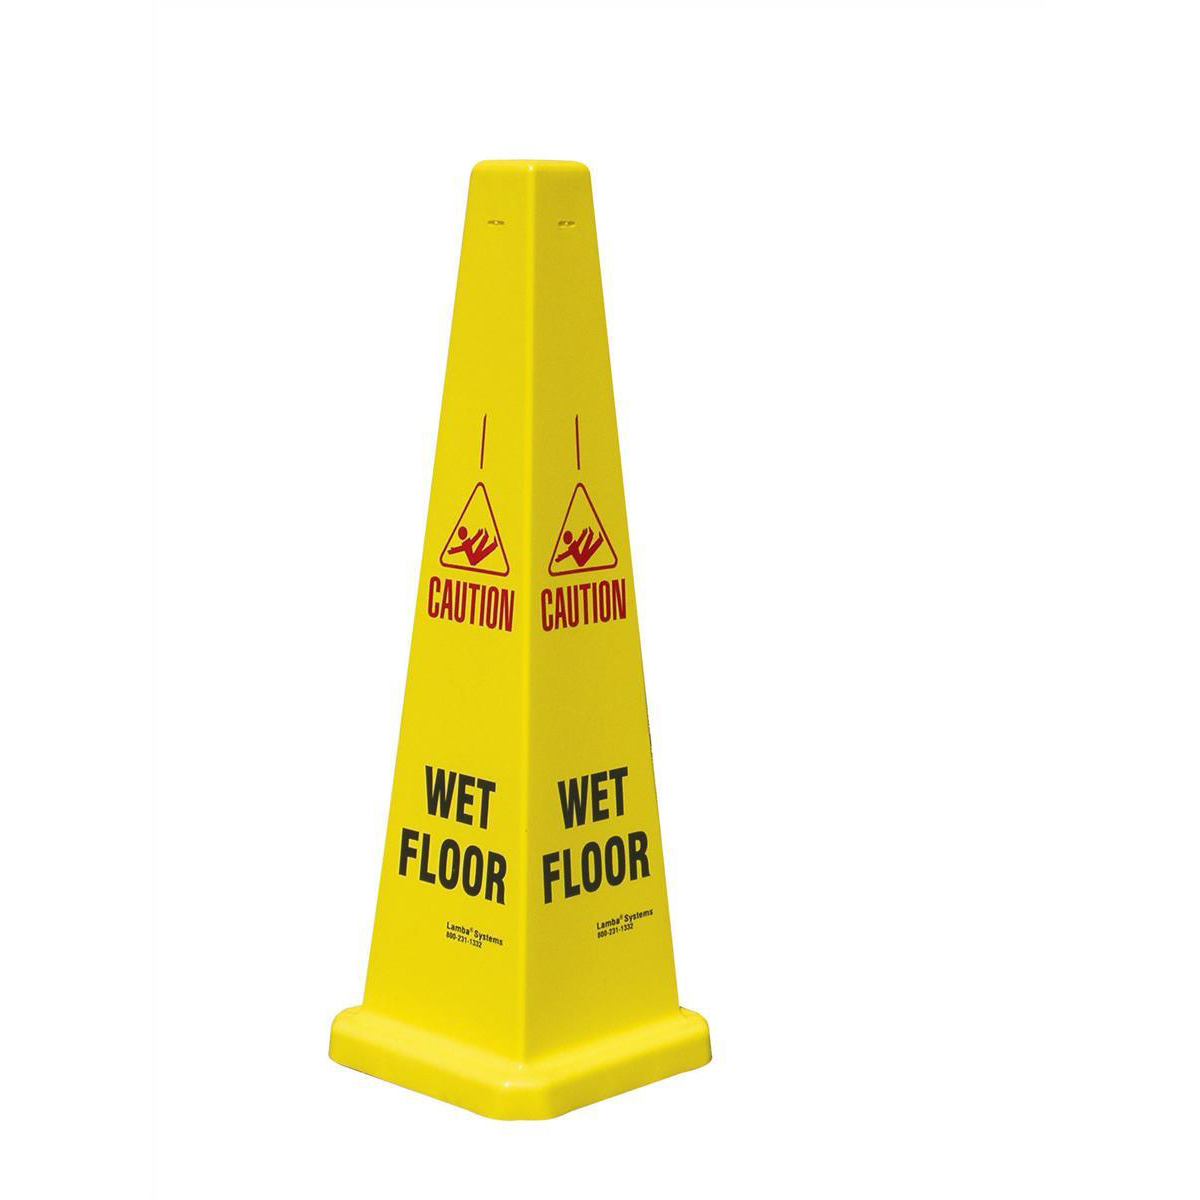 Collector Caution Cone for Wet Floors Stackable Height 900mm Ref JCP121-200-200